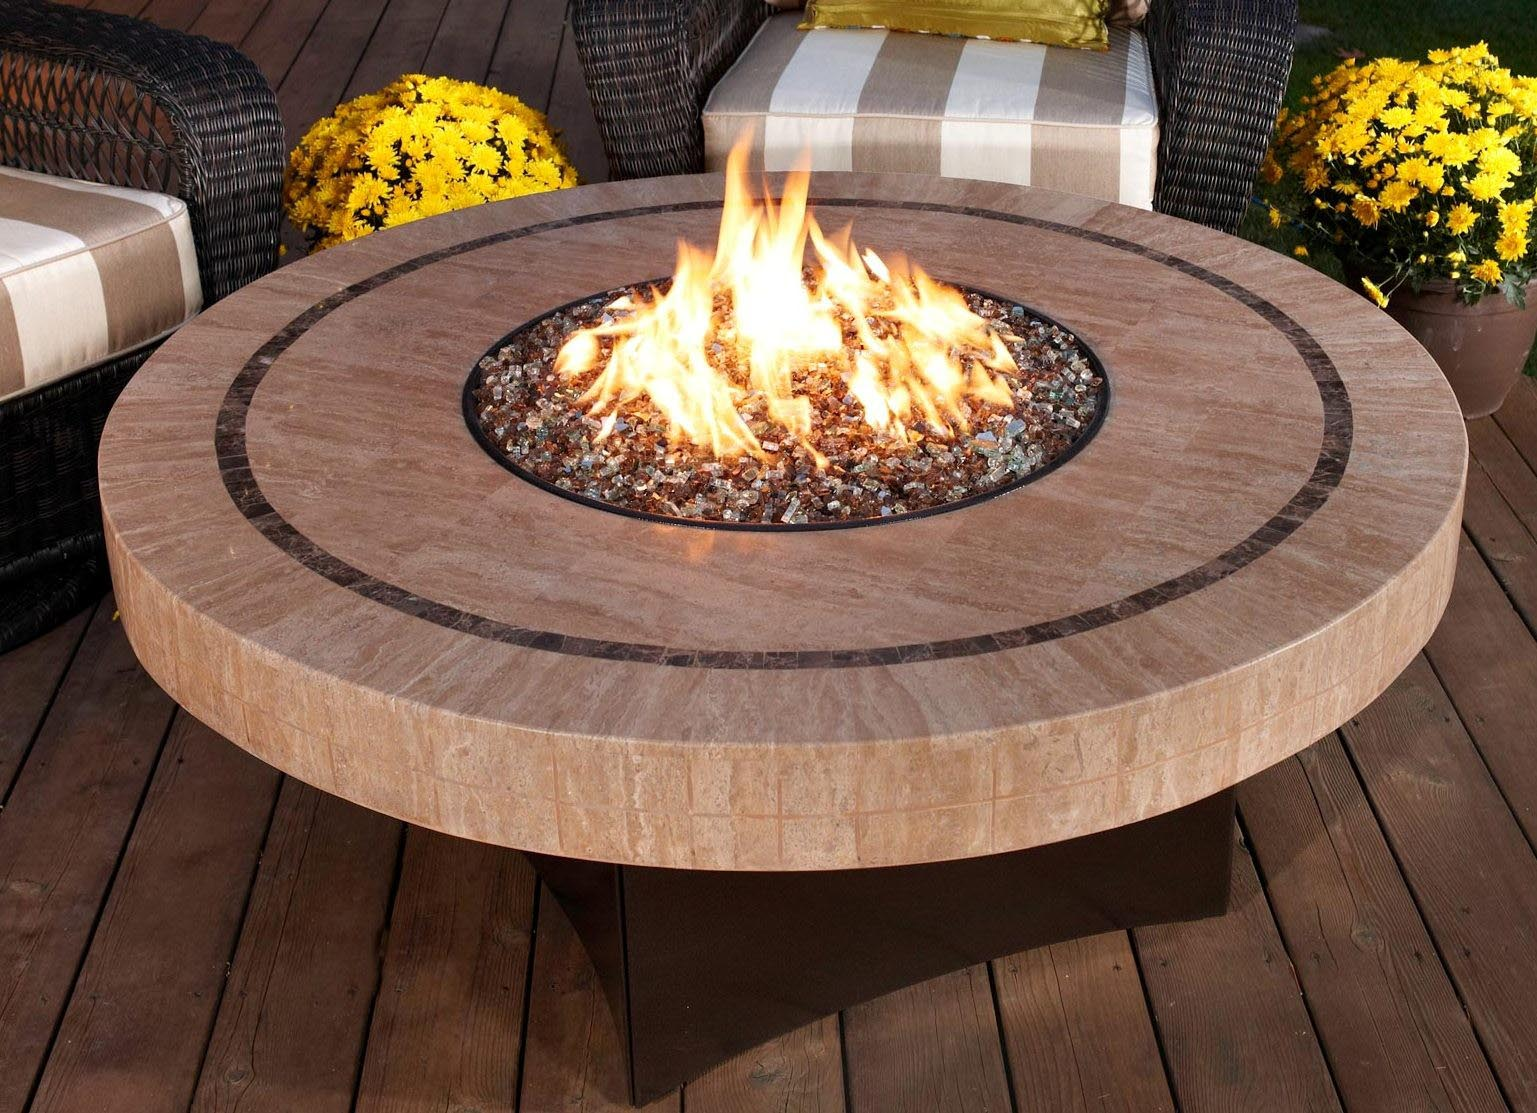 Small fire pit table fire pit design ideas for Small outdoor table ideas